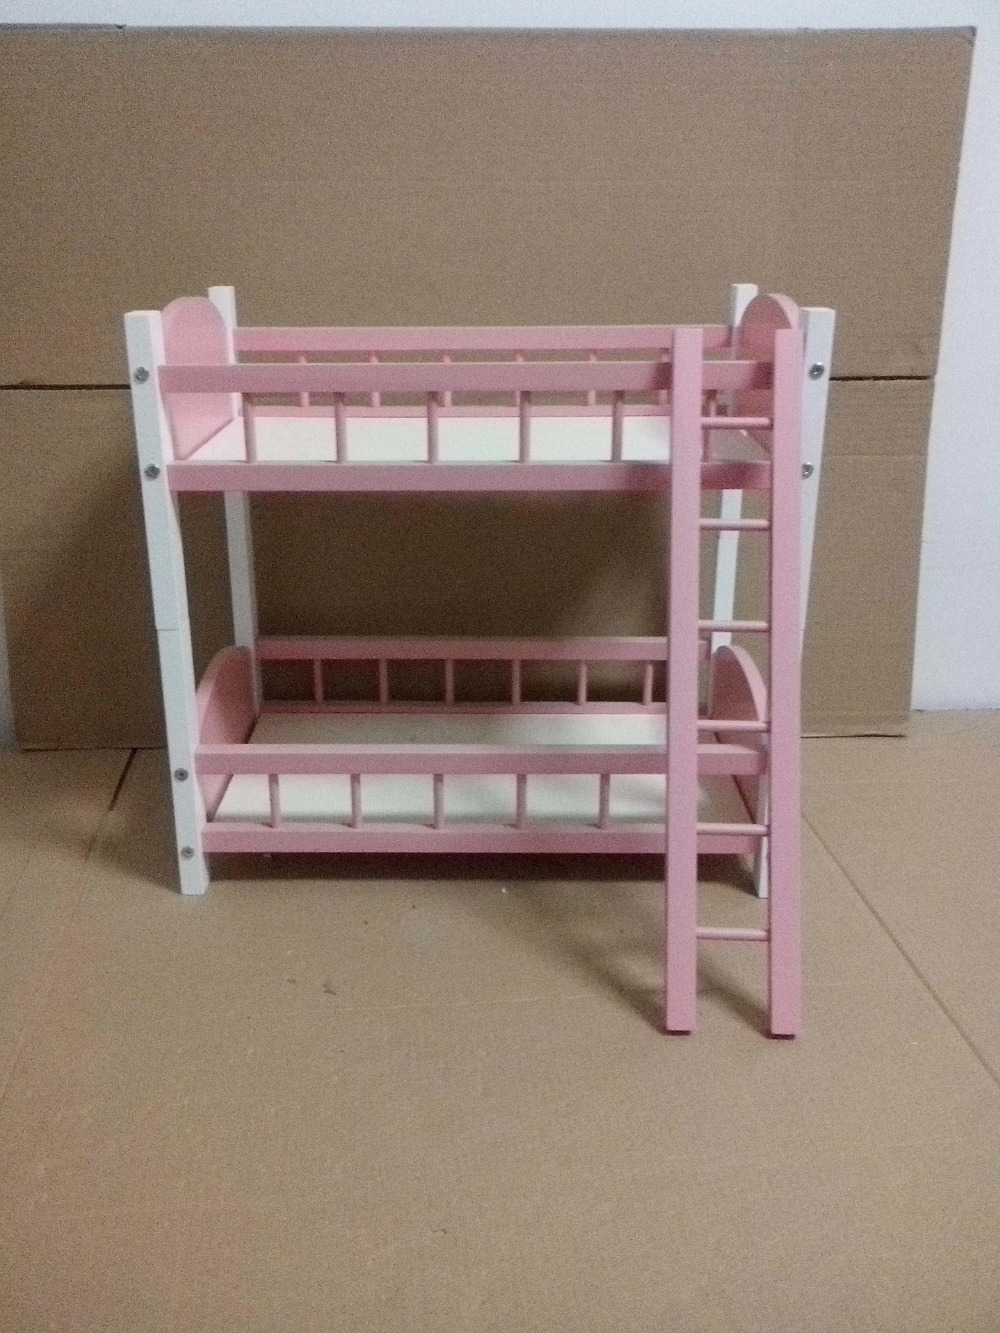 Double bunk beds with slide -  Wamami 87 Pink Wood Bed Bunk Bed Frame Double Decker For